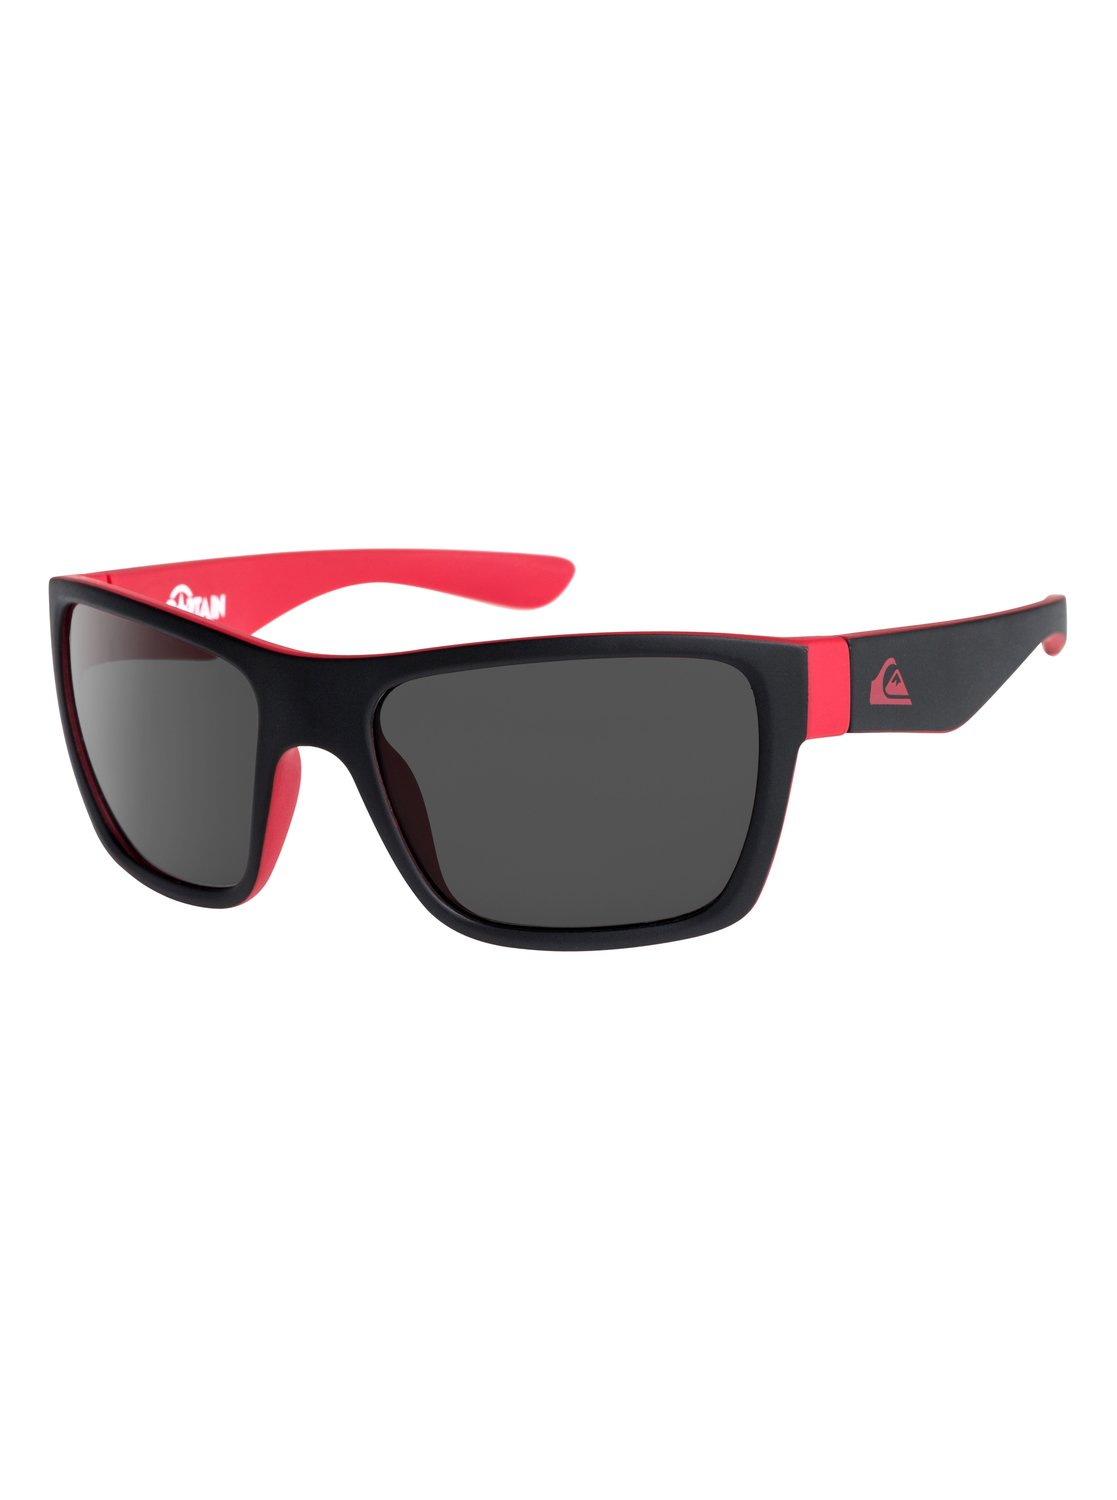 Captain Sunglasses for Boys 2 7